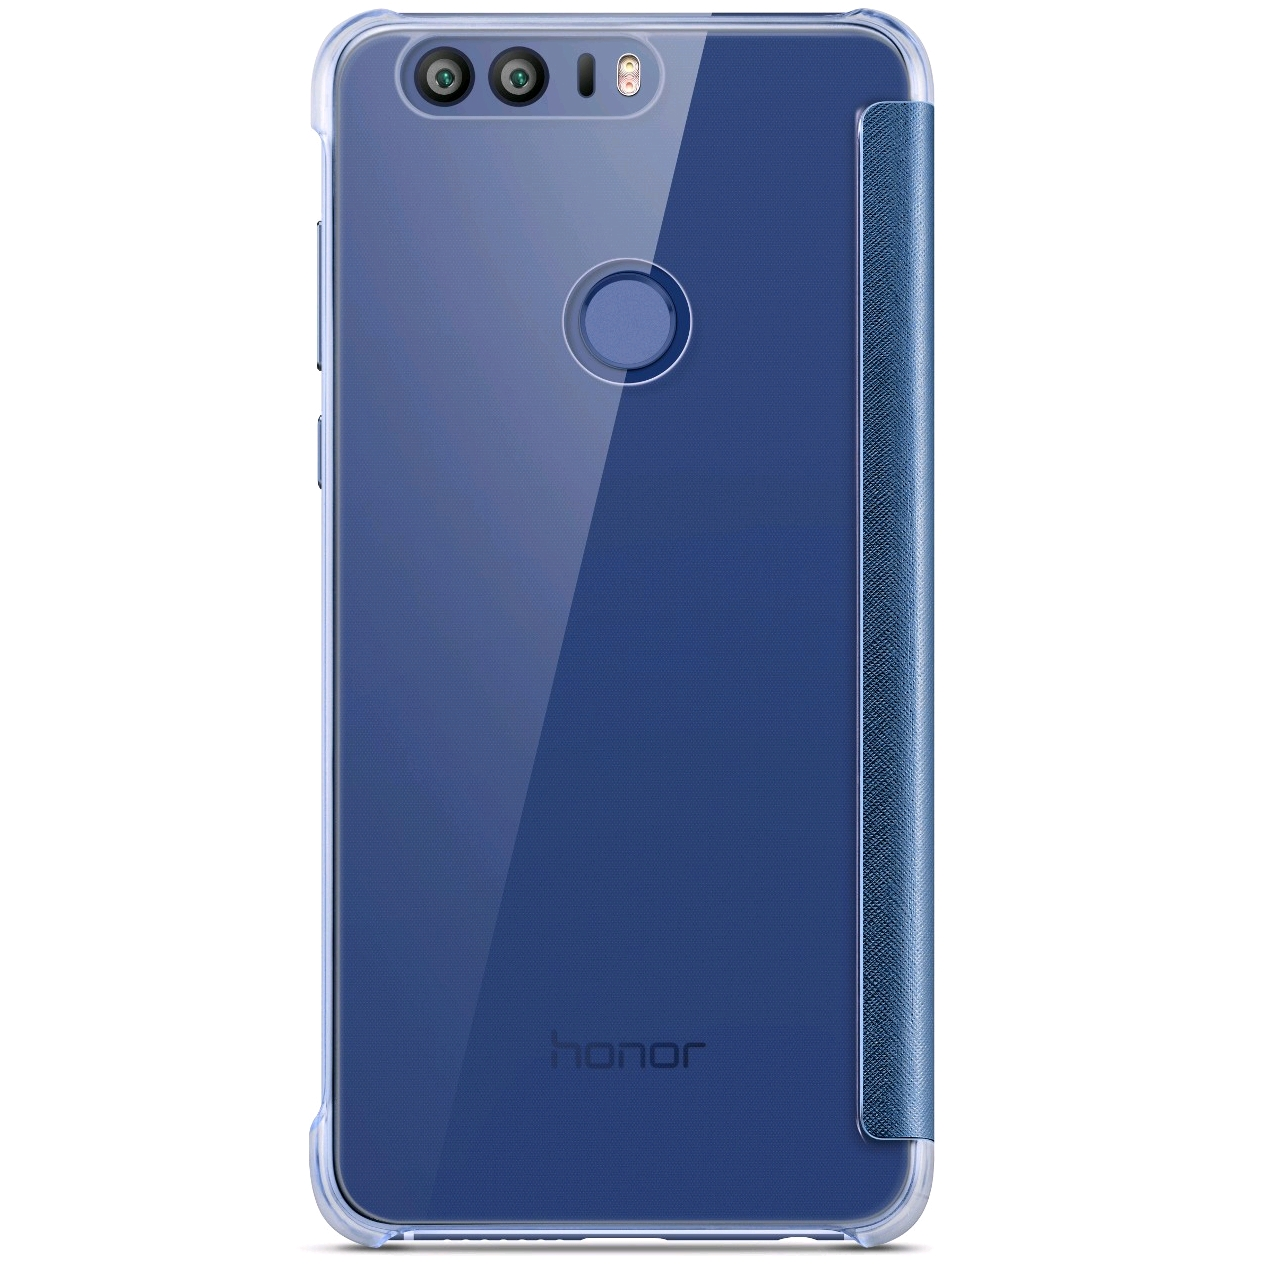 honor 8 view flip cover blue vmall official huawei. Black Bedroom Furniture Sets. Home Design Ideas